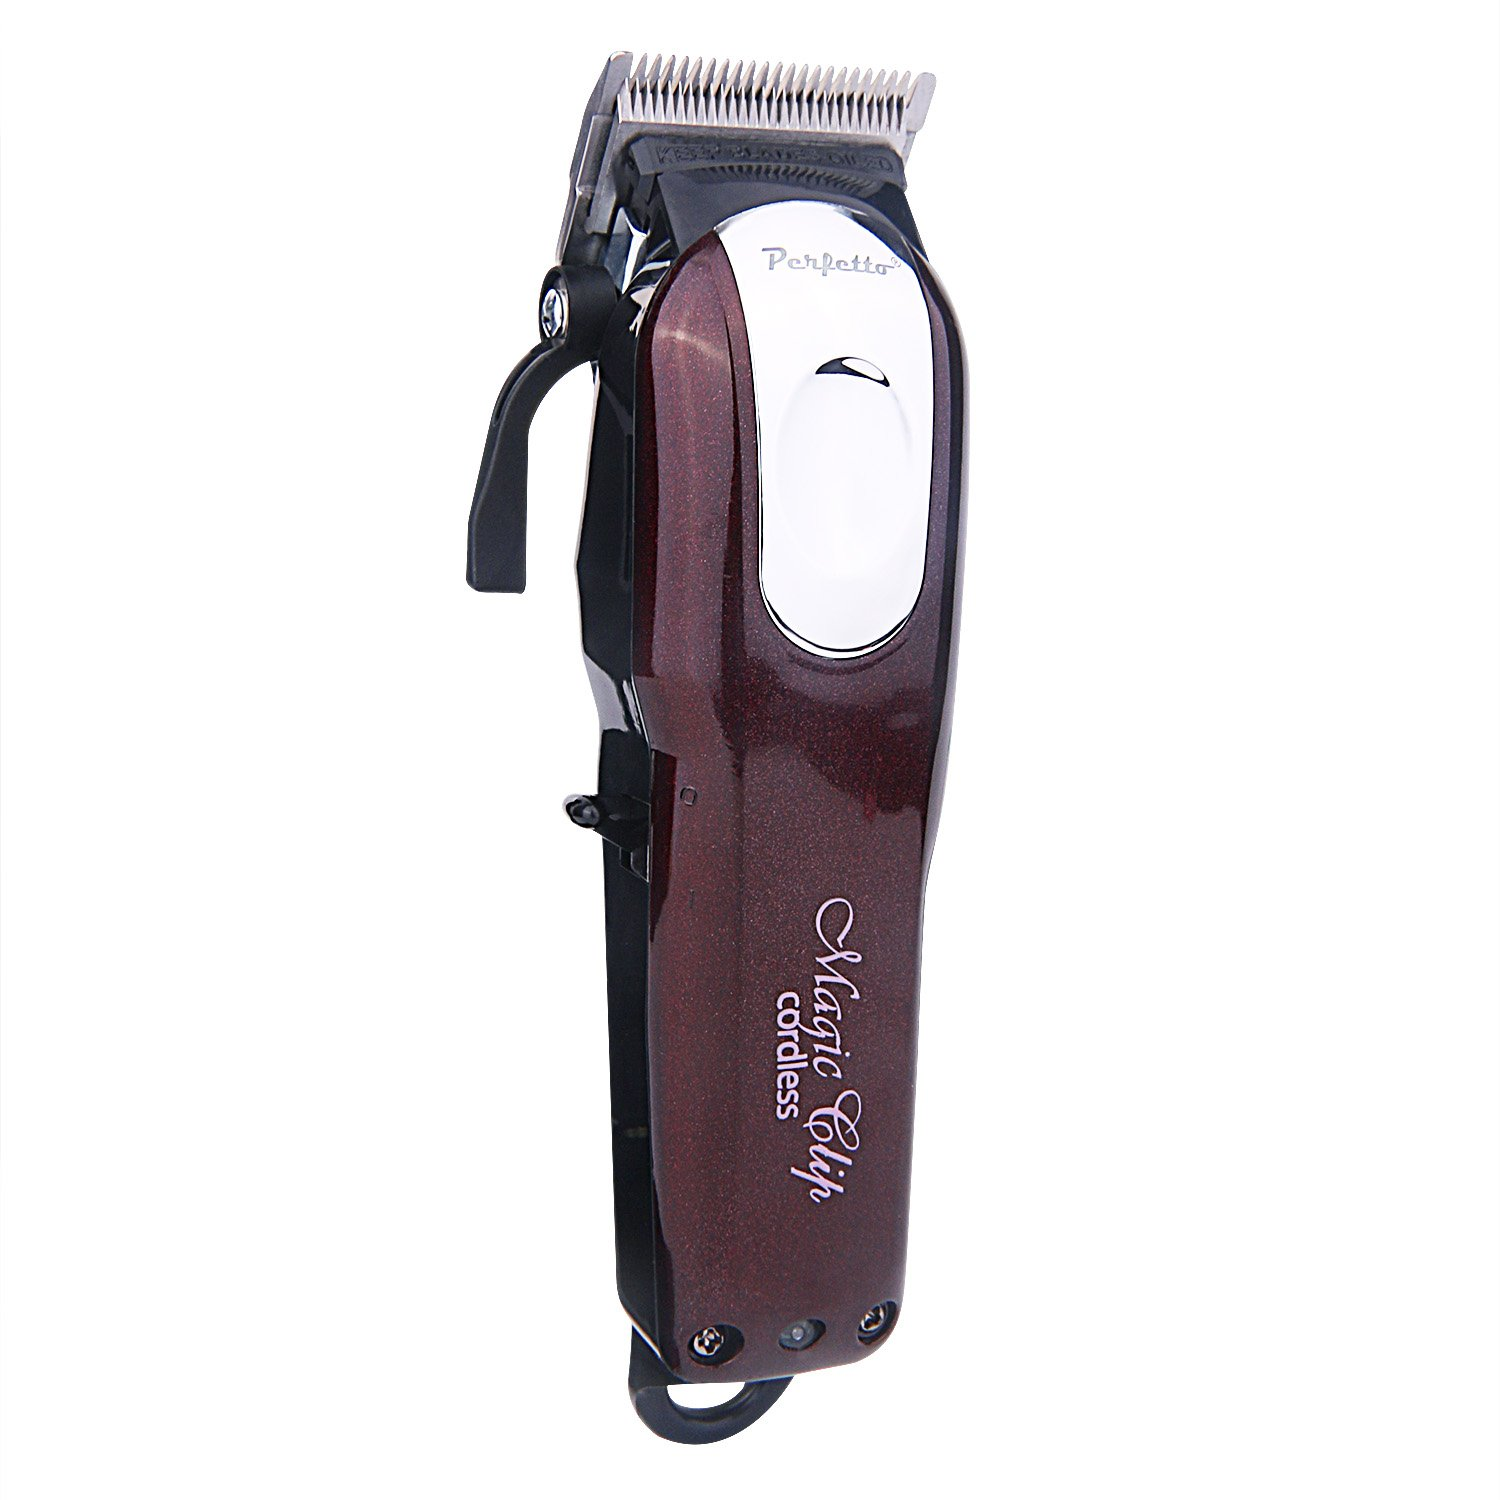 Perfetto Cordless Hair Clipper,Great for Barbers and Stylists,Rechargeable – 60 Minute Run Time Red